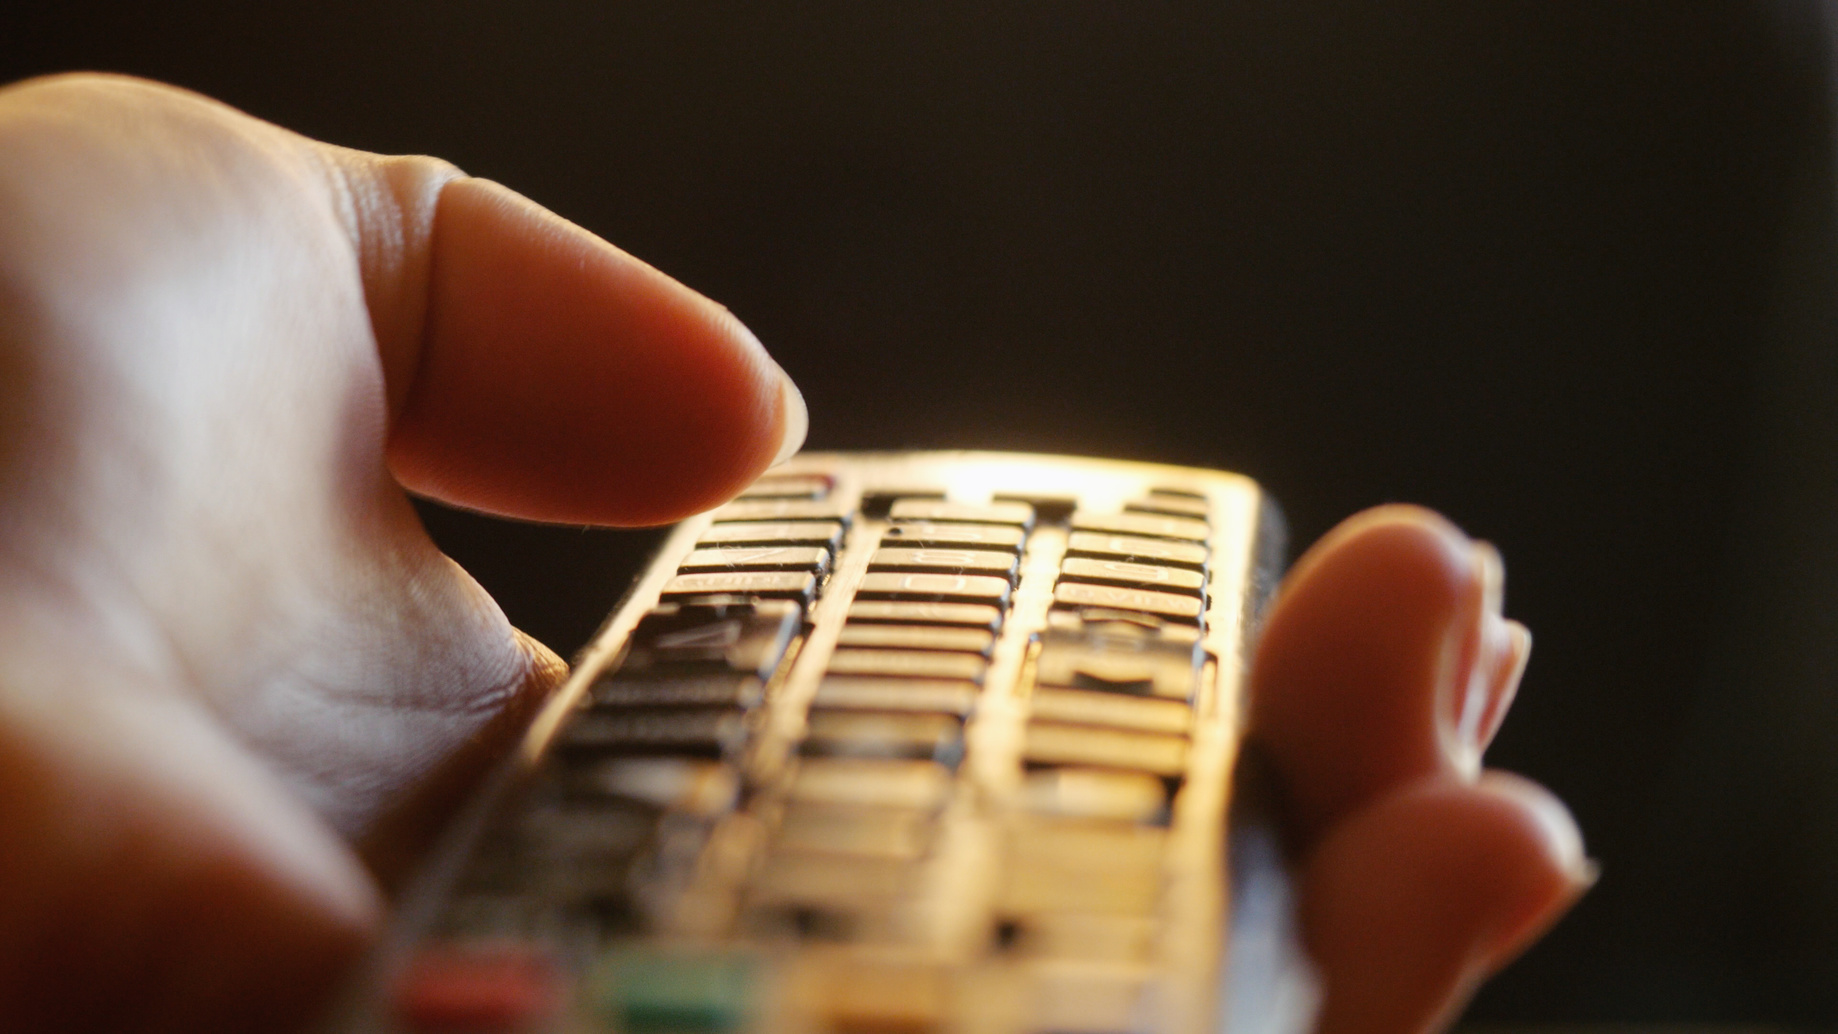 Close up of woman's hand with a television remote control changing channels at sunset time